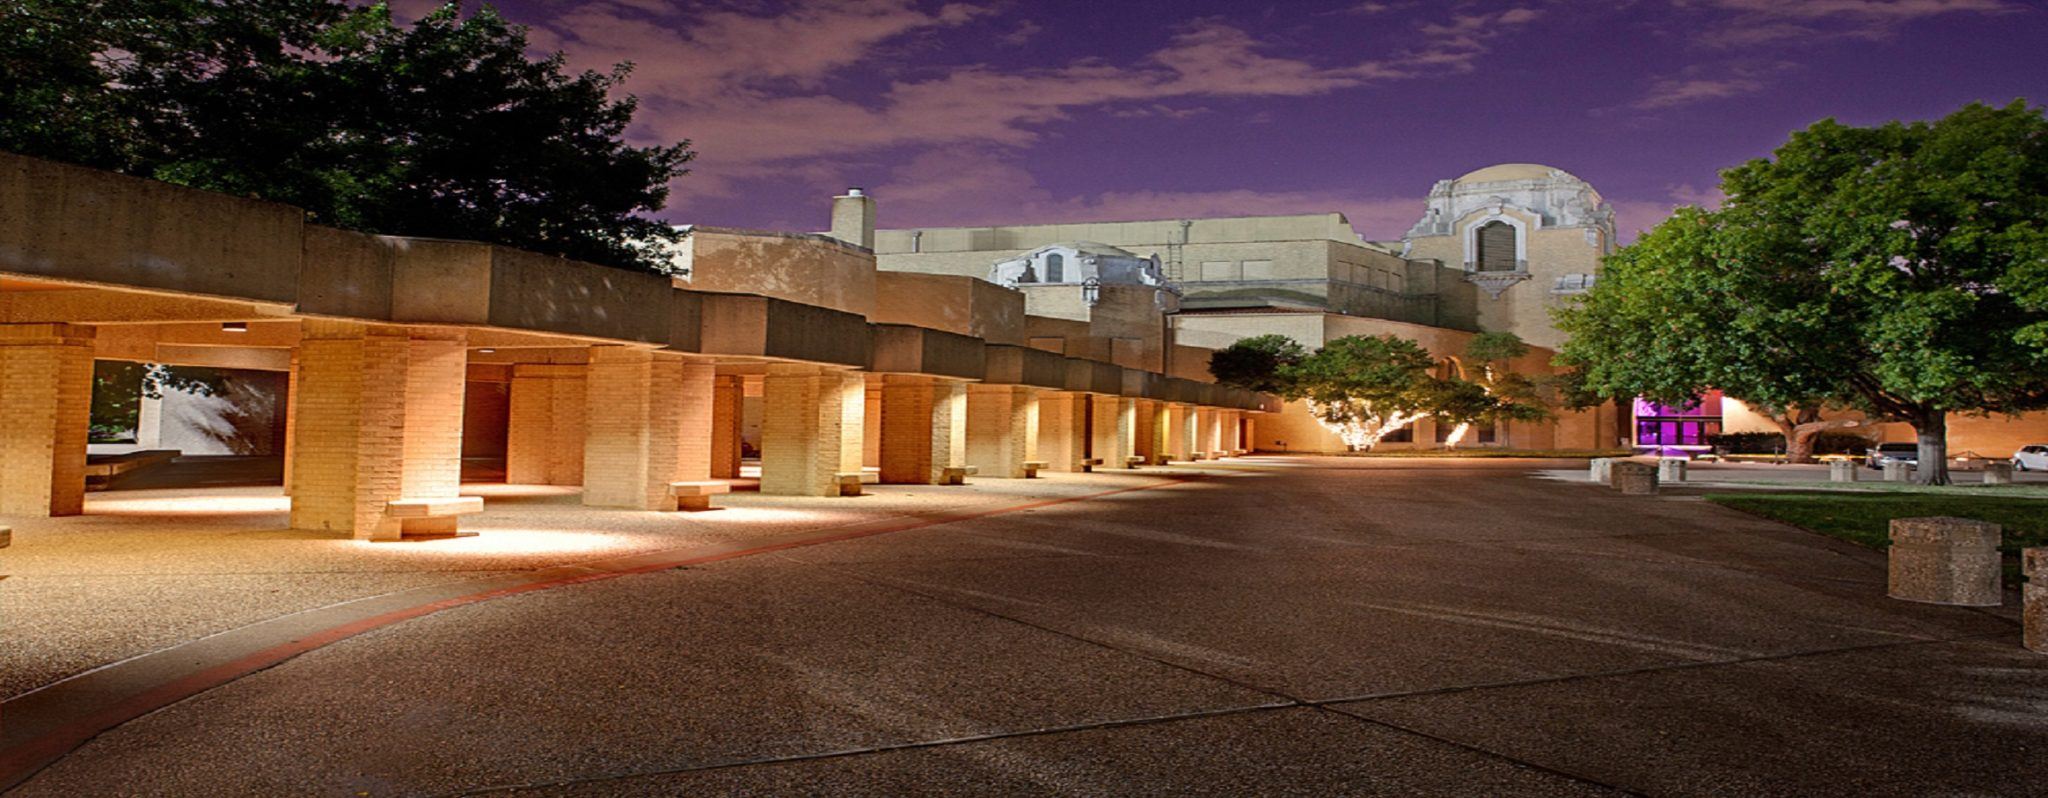 View of Music Hall at Fair Park at night